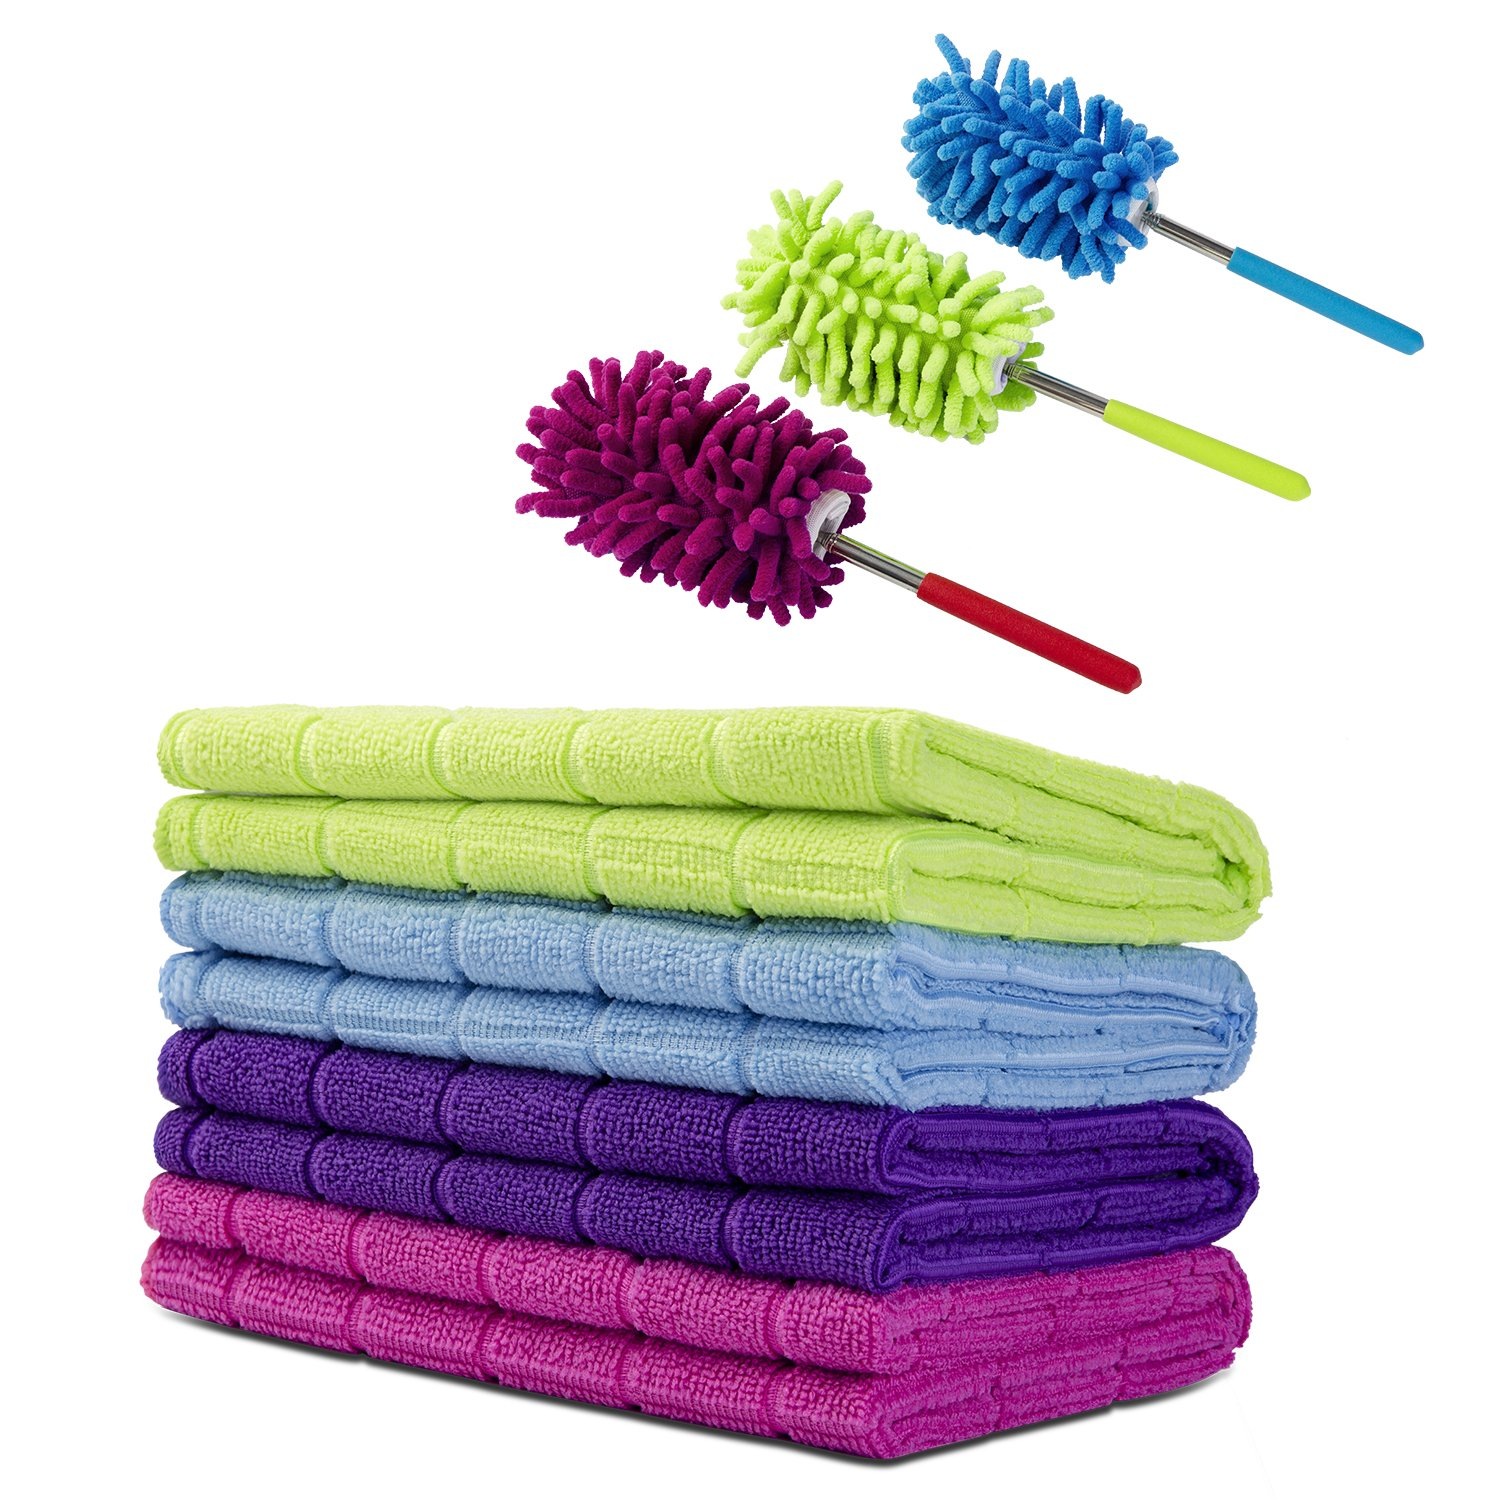 "Srotek Cleaning Cloth Set,4 Pack Thick Microfiber/Multi-Purpose Cleaning Towels (15.5""x23.5"")/Highly Absorbent Clean Cloth For Cleaning Bathroom,Kitchen/With 3 Piece Microfiber Adjustable Duster"